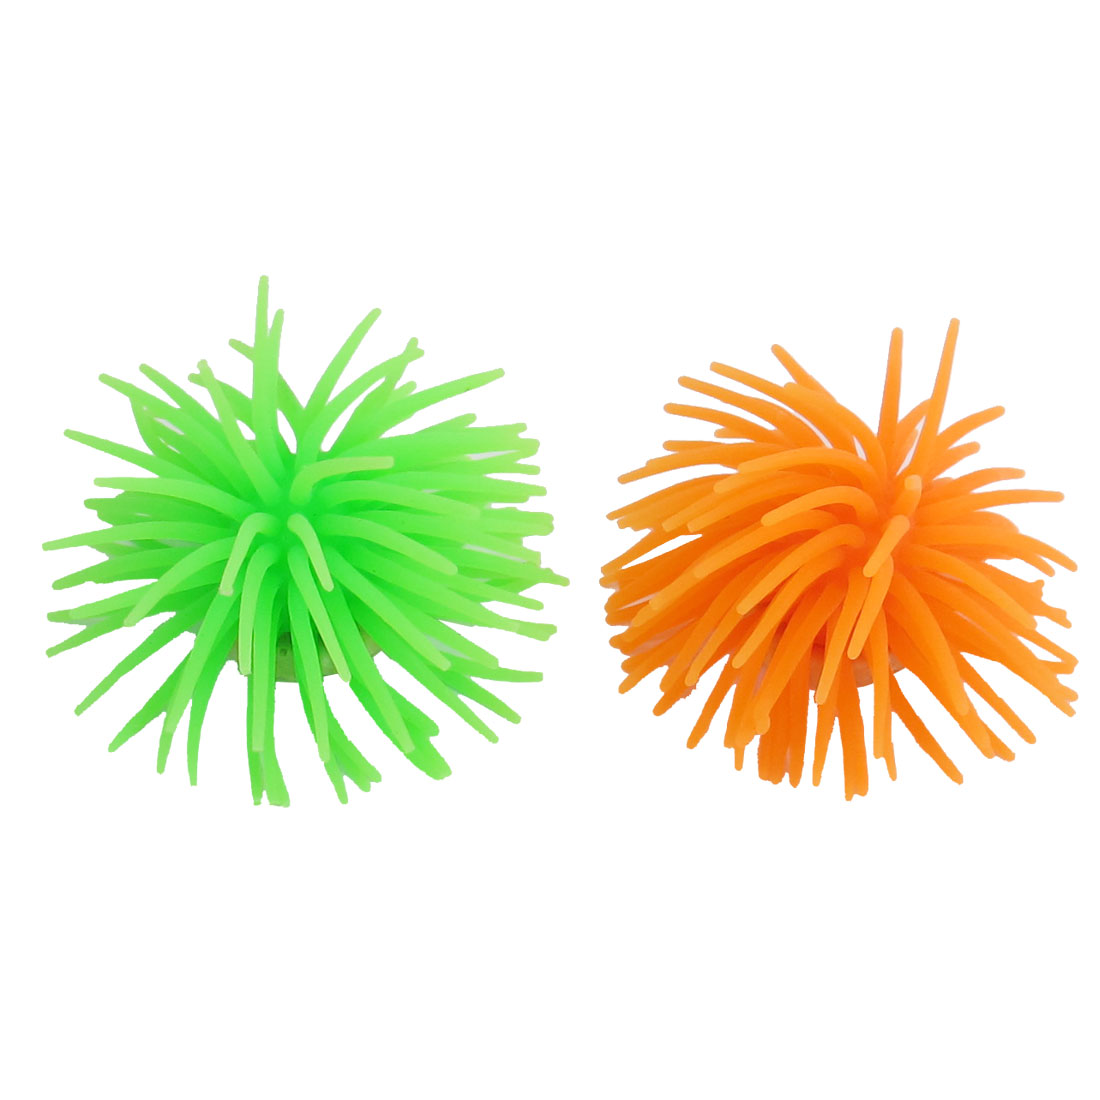 2 Pcs Orange Green Soft Silicone Corals Ornament for Fish Tank Aquarium